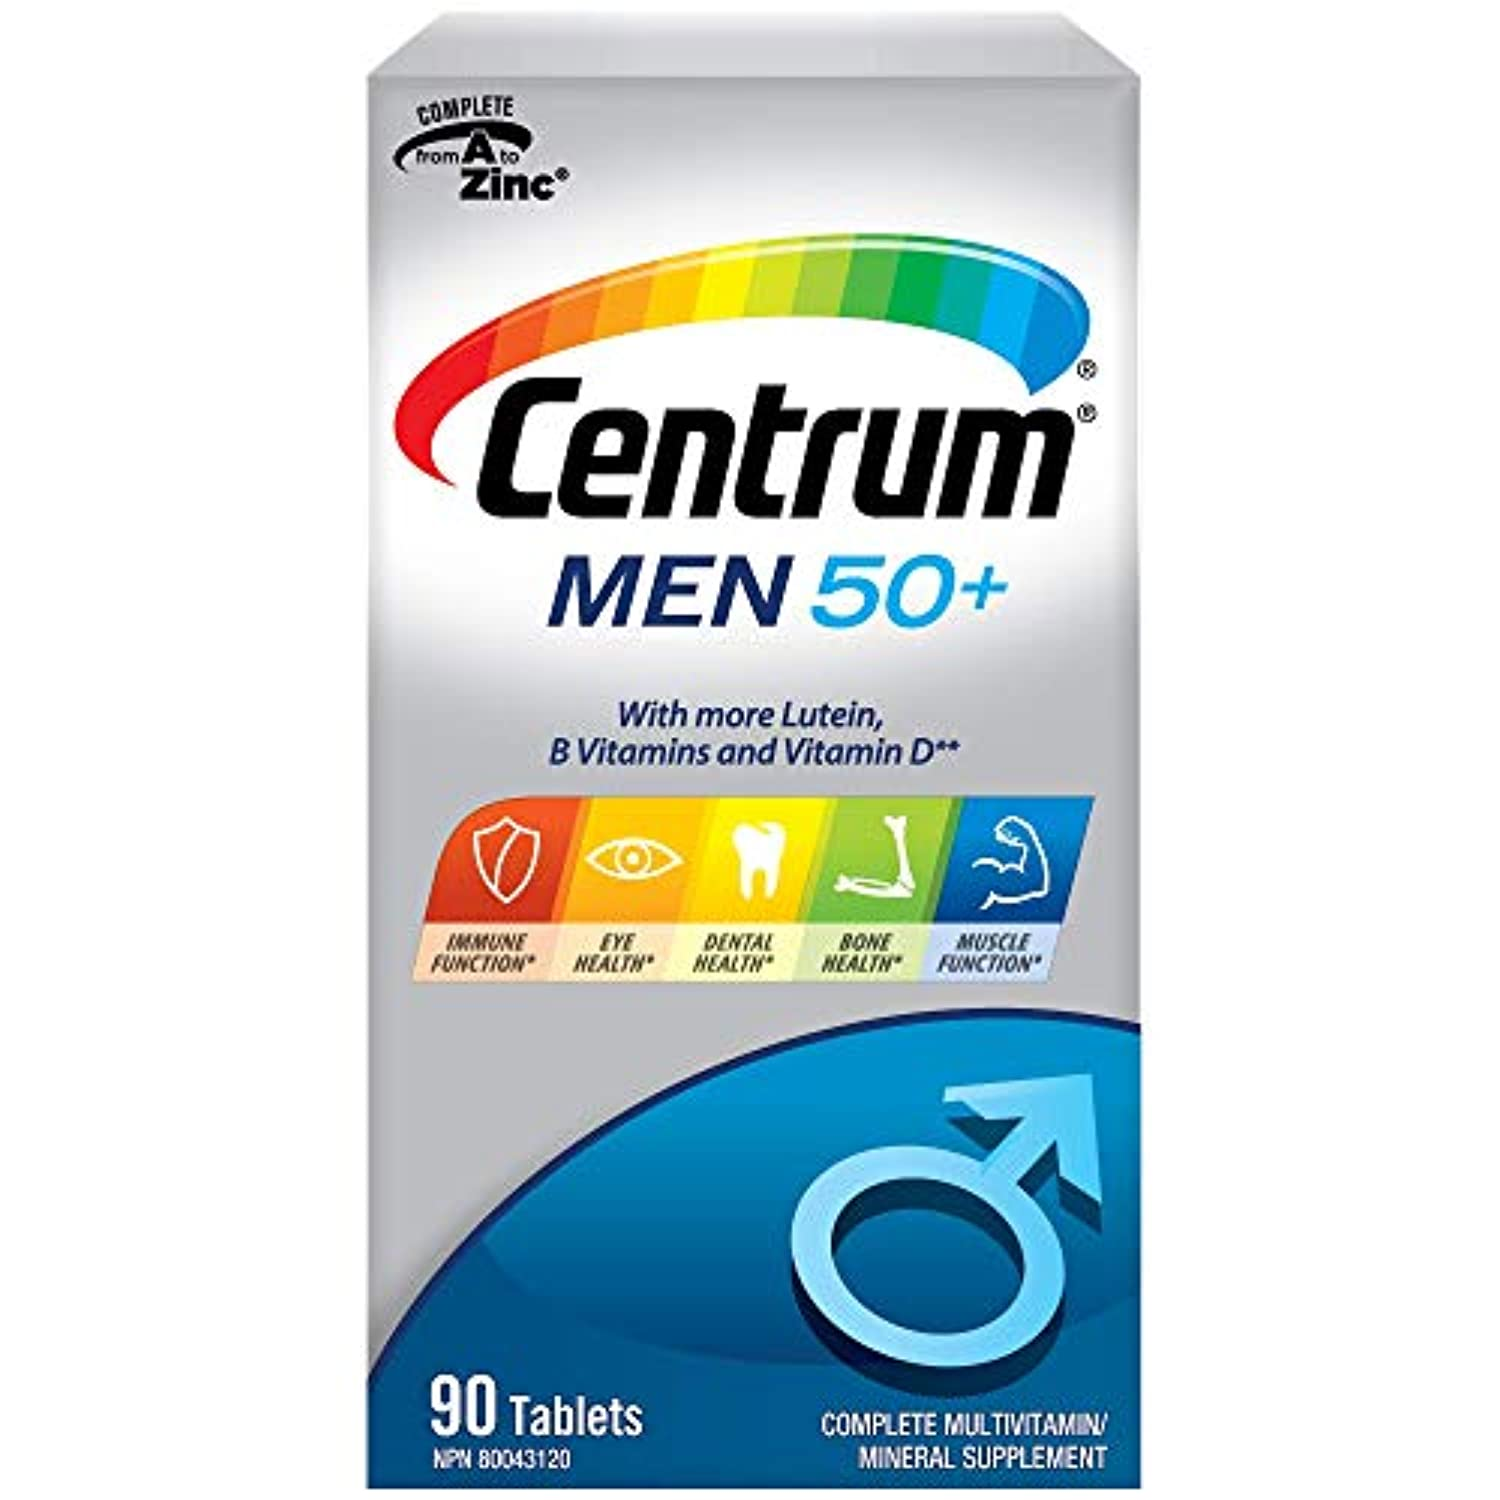 Centrum Men 50+ (90 Count) Multivitamin Multimineral Supplement Tablet, Vitamin B, Age 50 and older